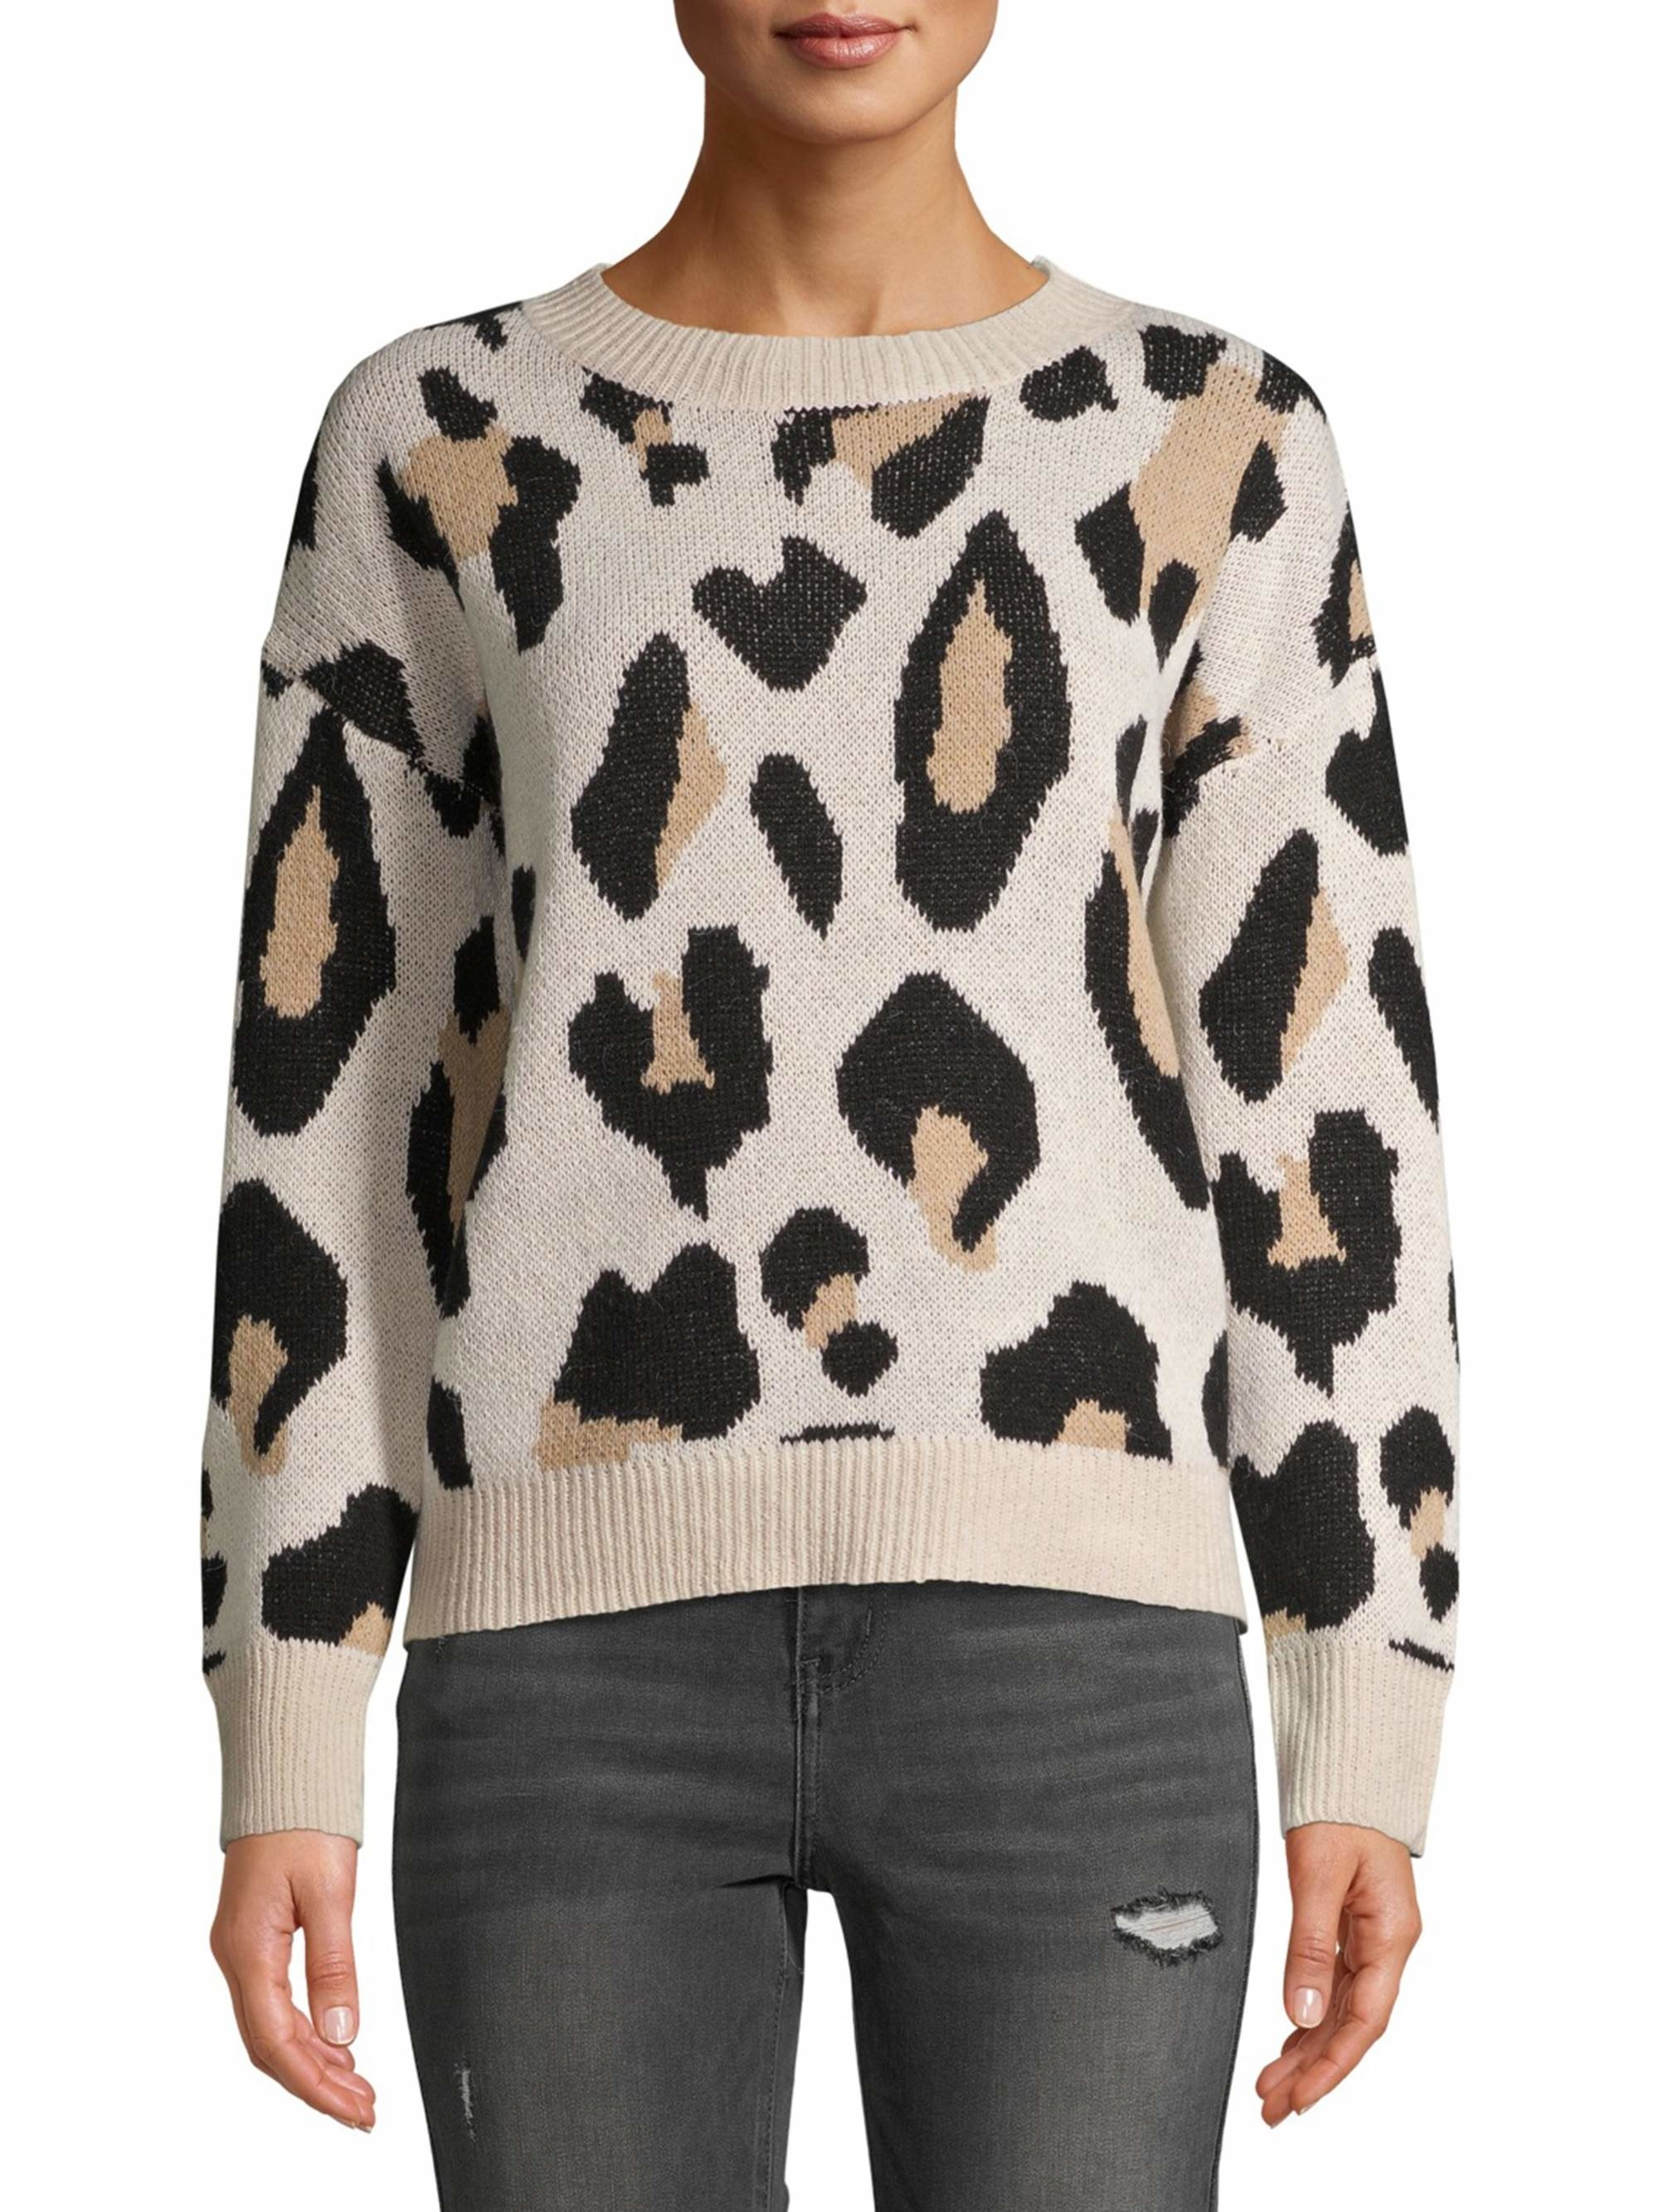 person wearing a leopard print sweater and black distressed jeans